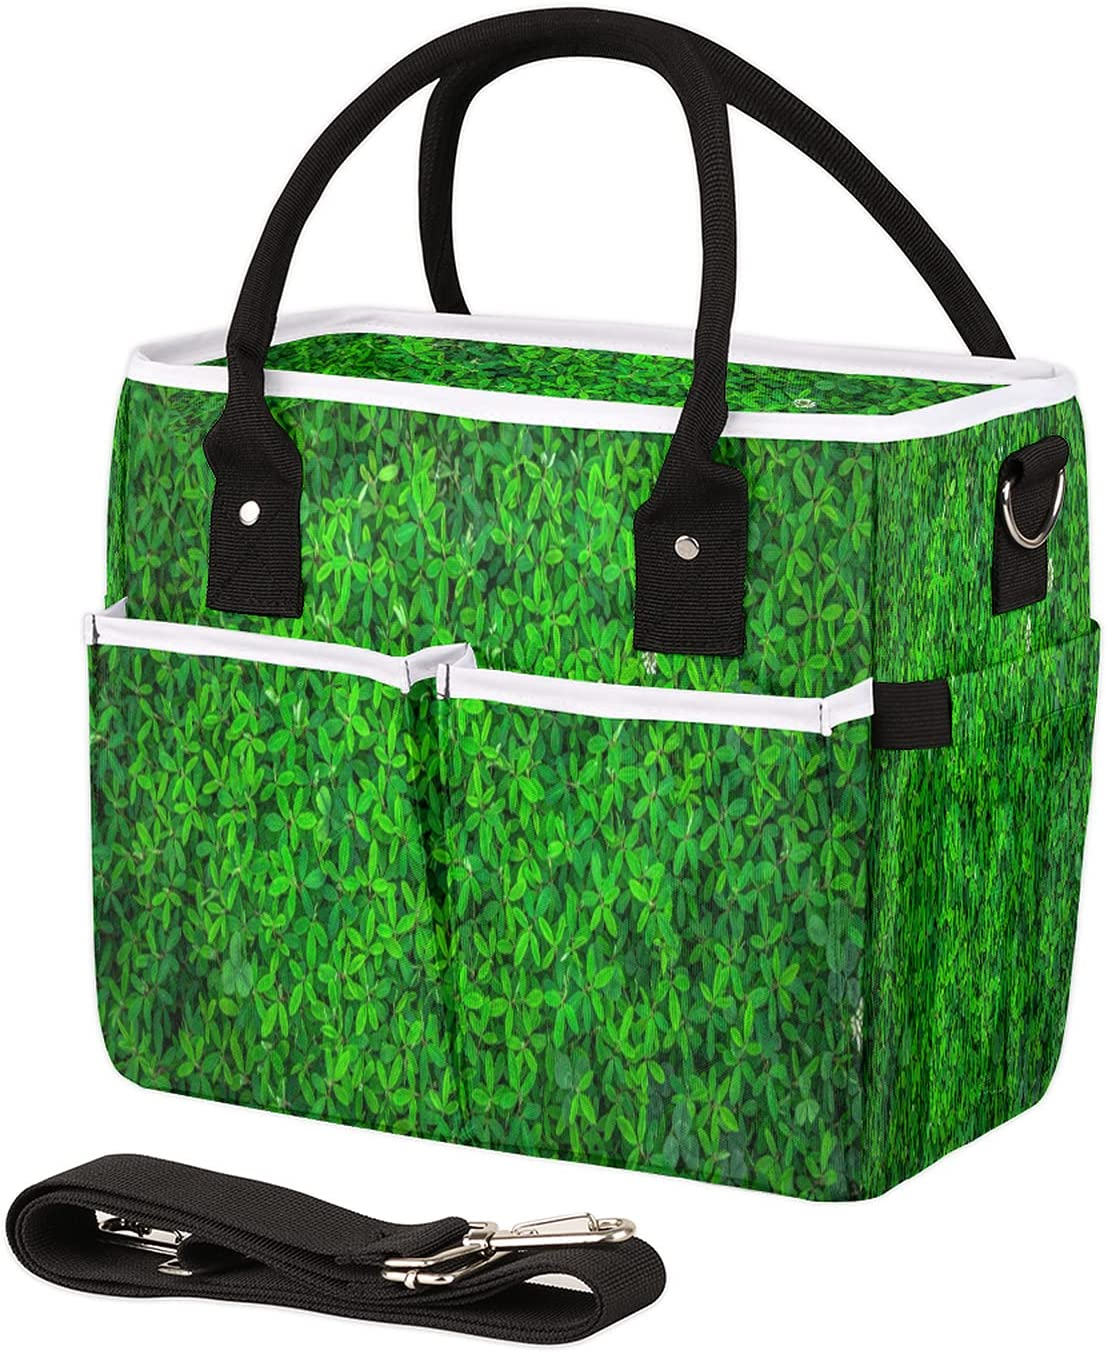 Insulated Lunch Today's only Bag for Max 72% OFF Women Leaves Leakproof Reusab Men Spring